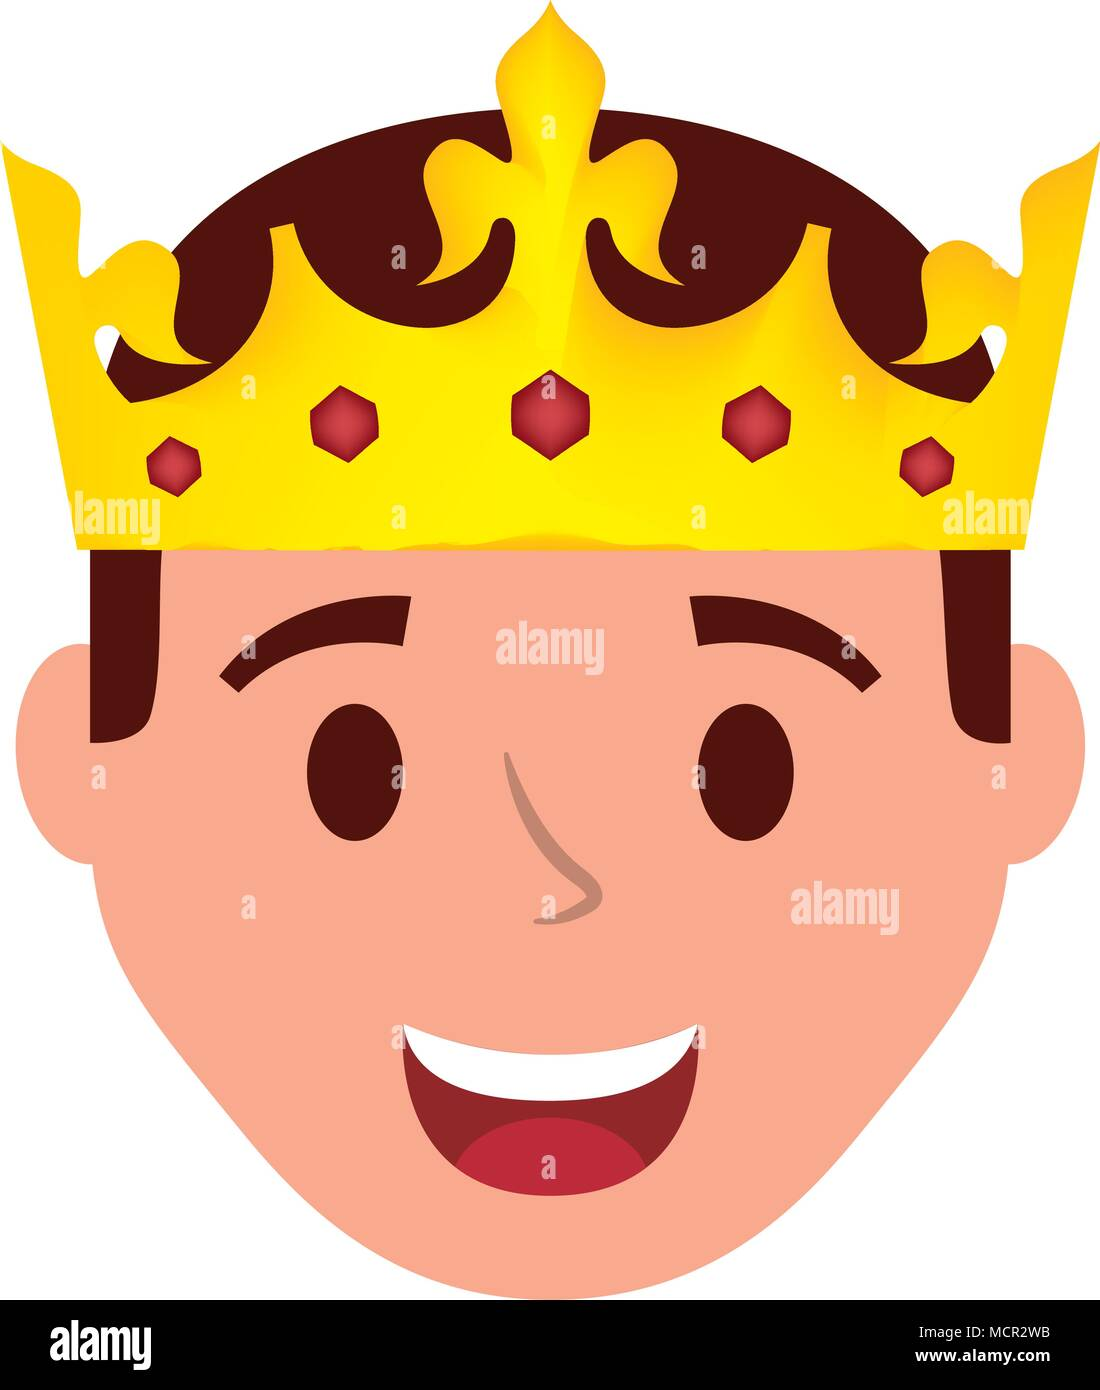 Young Man Head With Crown Avatar Character Stock Vector Image Art Alamy Search, discover and share your favorite crown cartoon gifs. https www alamy com young man head with crown avatar character image179986727 html